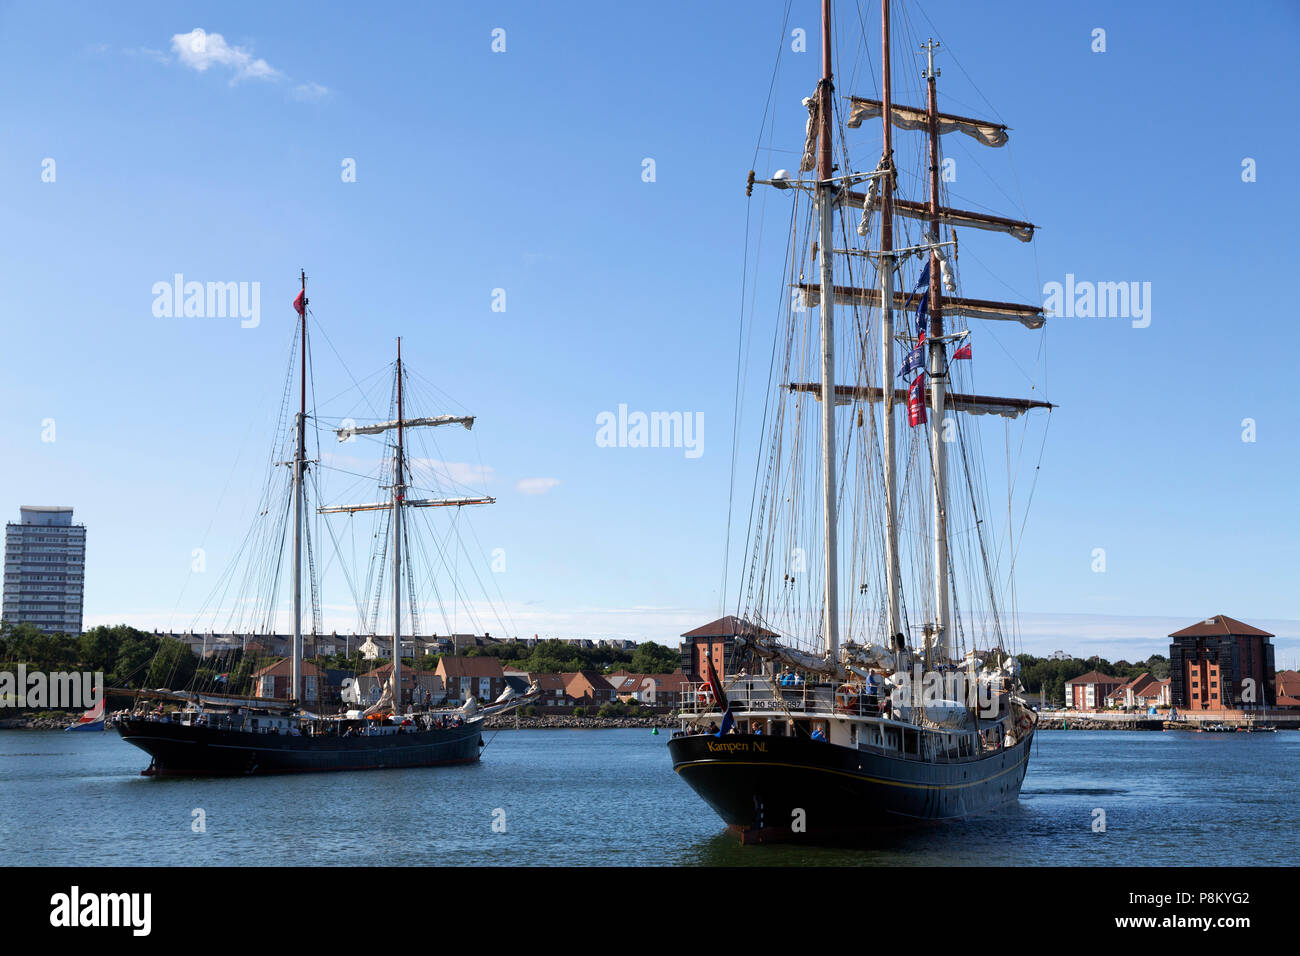 Sunderland, UK. 12th July, 2018. People take a cruise on a tall ship during the Tall Ships Race at Sunderland in north-east England. The tall ships will be in Sunderland from 11 to 14 July before departing on the first leg of the 2018 Tall Ships Race, to Ebsjerg in Denmark. Credit: Stuart Forster/Alamy Live News - Stock Image